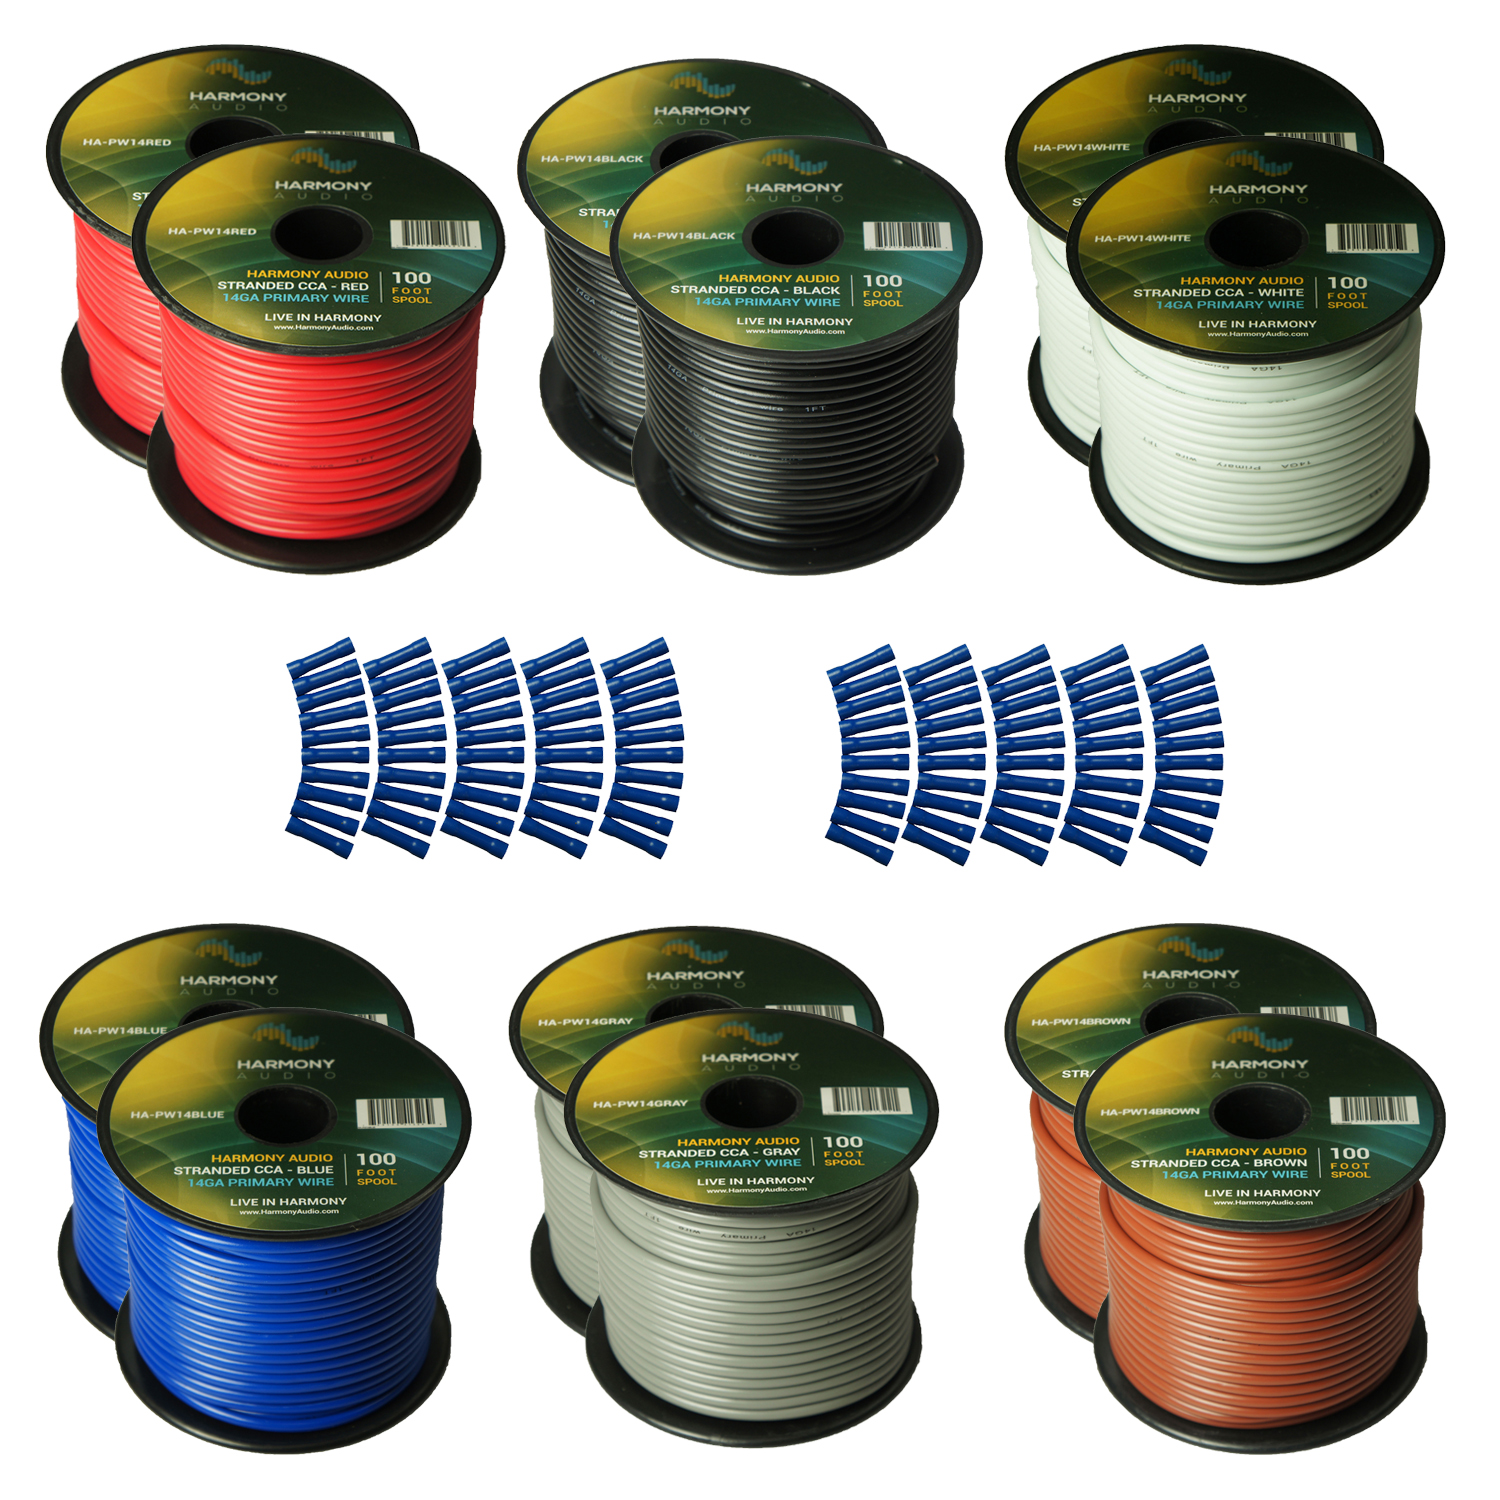 Harmony Audio Primary Single Conductor 14 Gauge Power or Ground Wire - 12 Rolls - 1200 Feet - 6 Color Mix for Car Audio / Trailer / Model Train / Remote